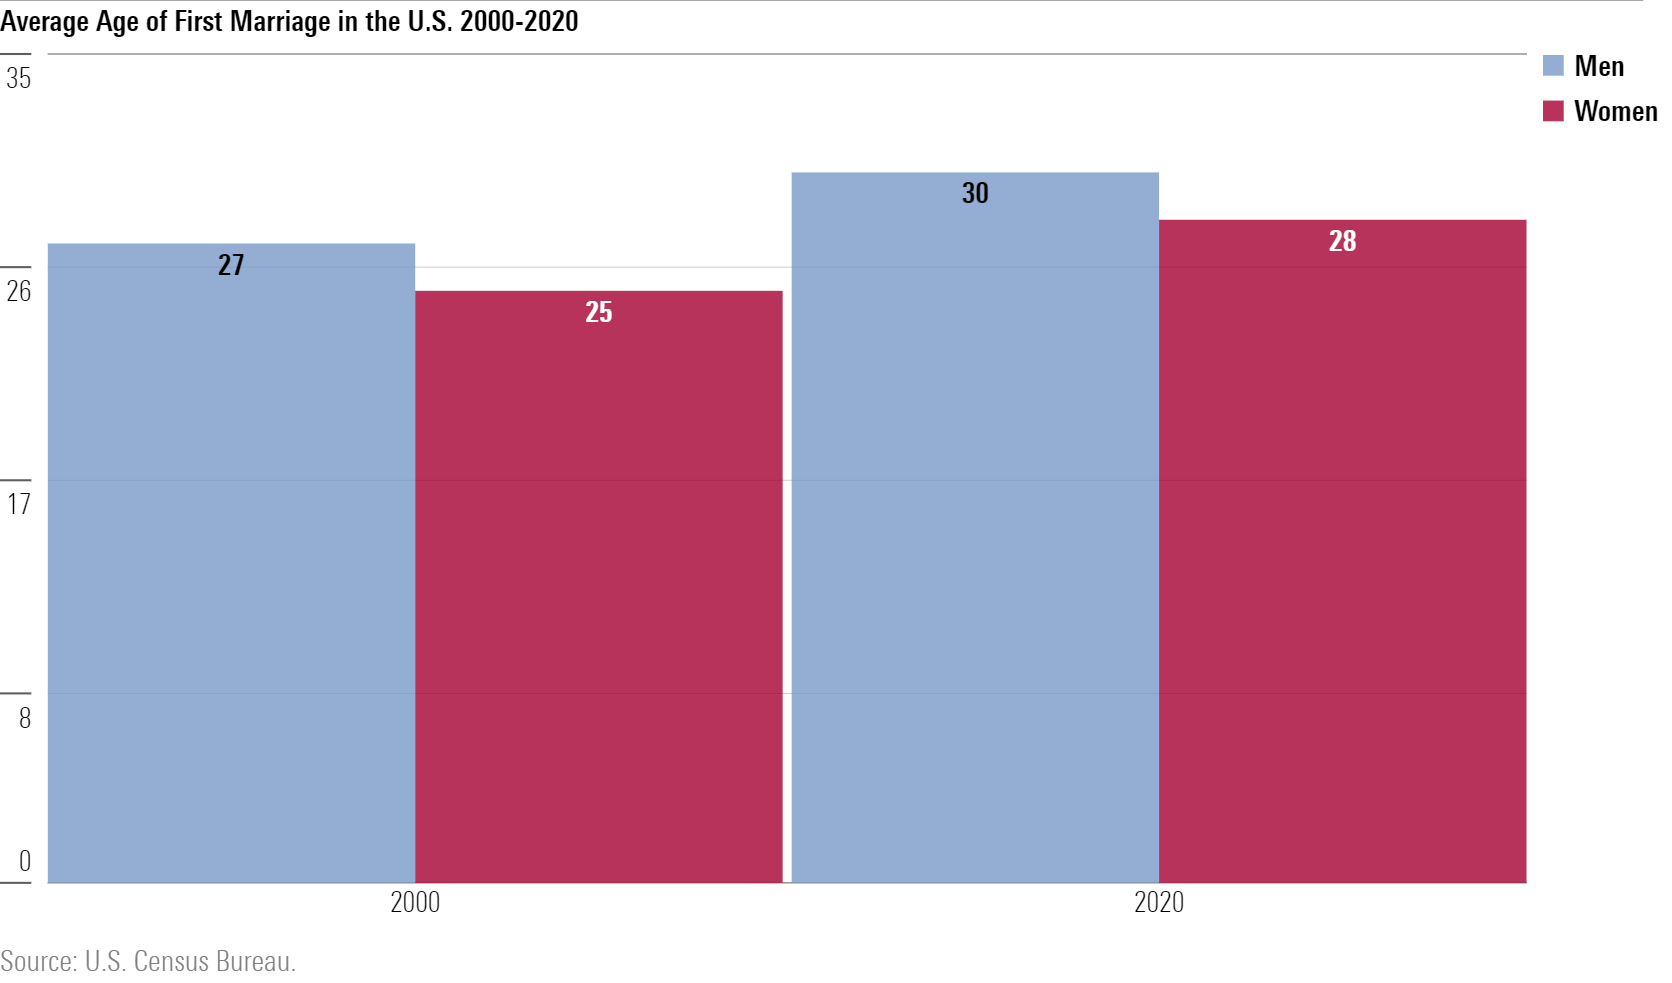 a graph showing the average age of first marriage in the US